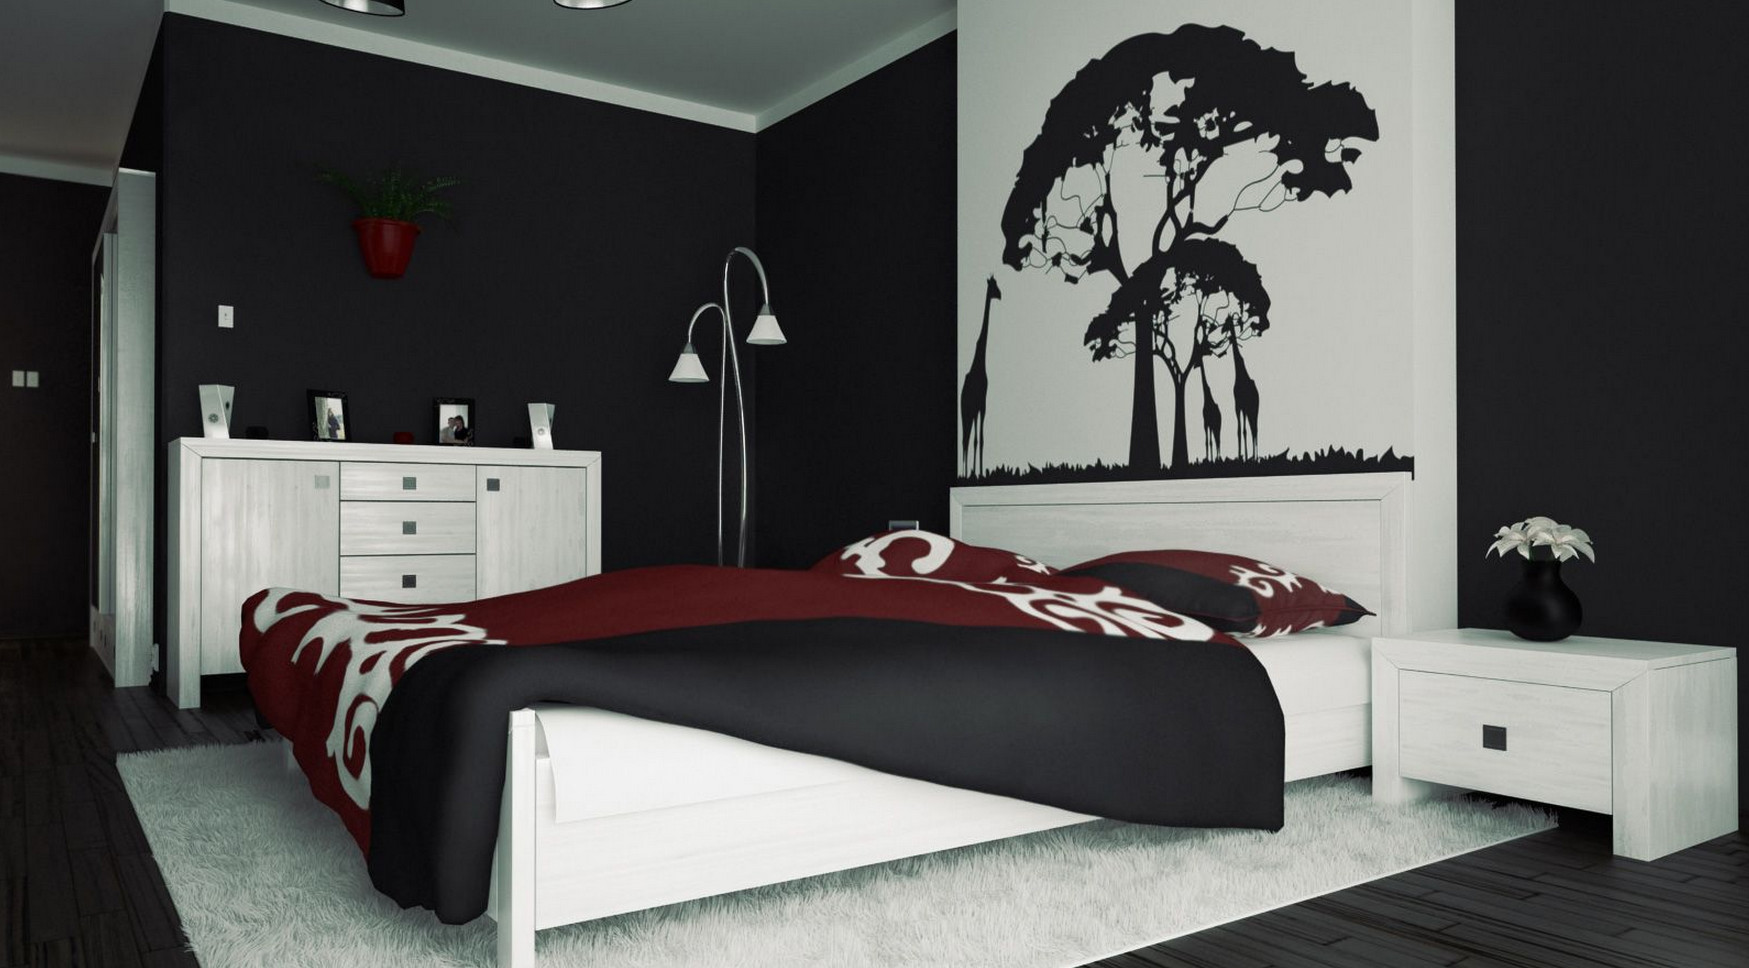 Red and Black Wall Painting Ideas  Interesting Ideas for Home